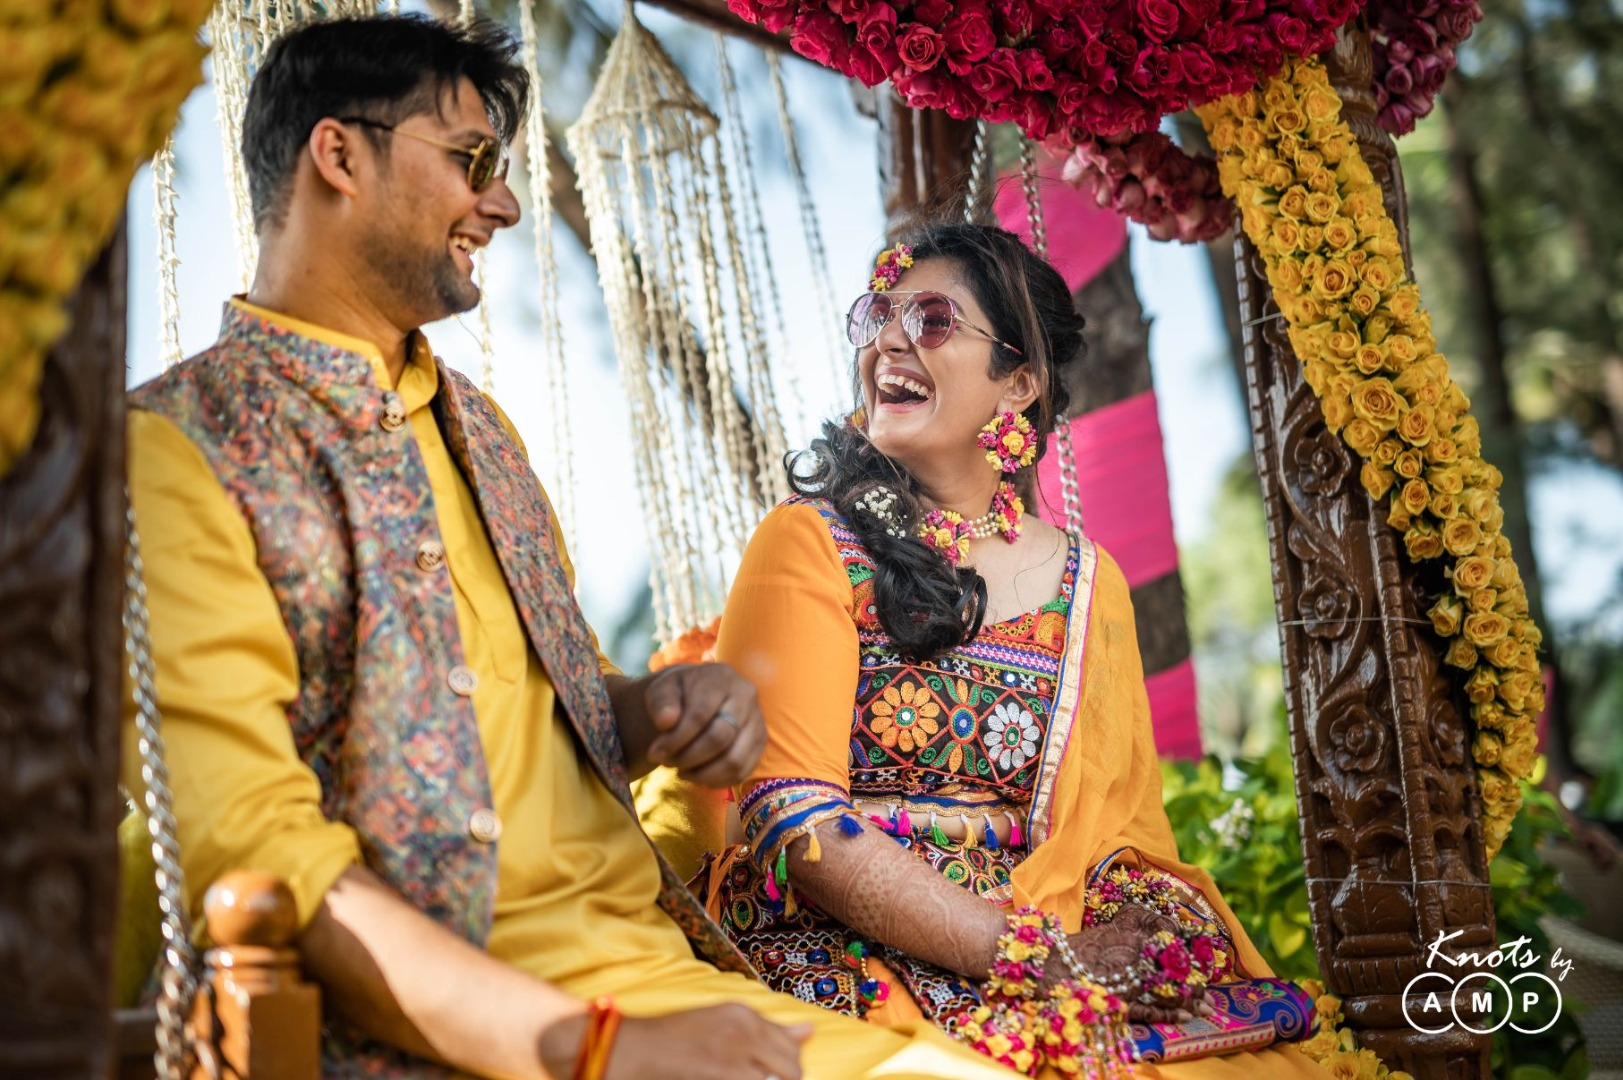 Laughing Bride & Groom for Haldi Ceremony on a Floral Decorated Swing Seating